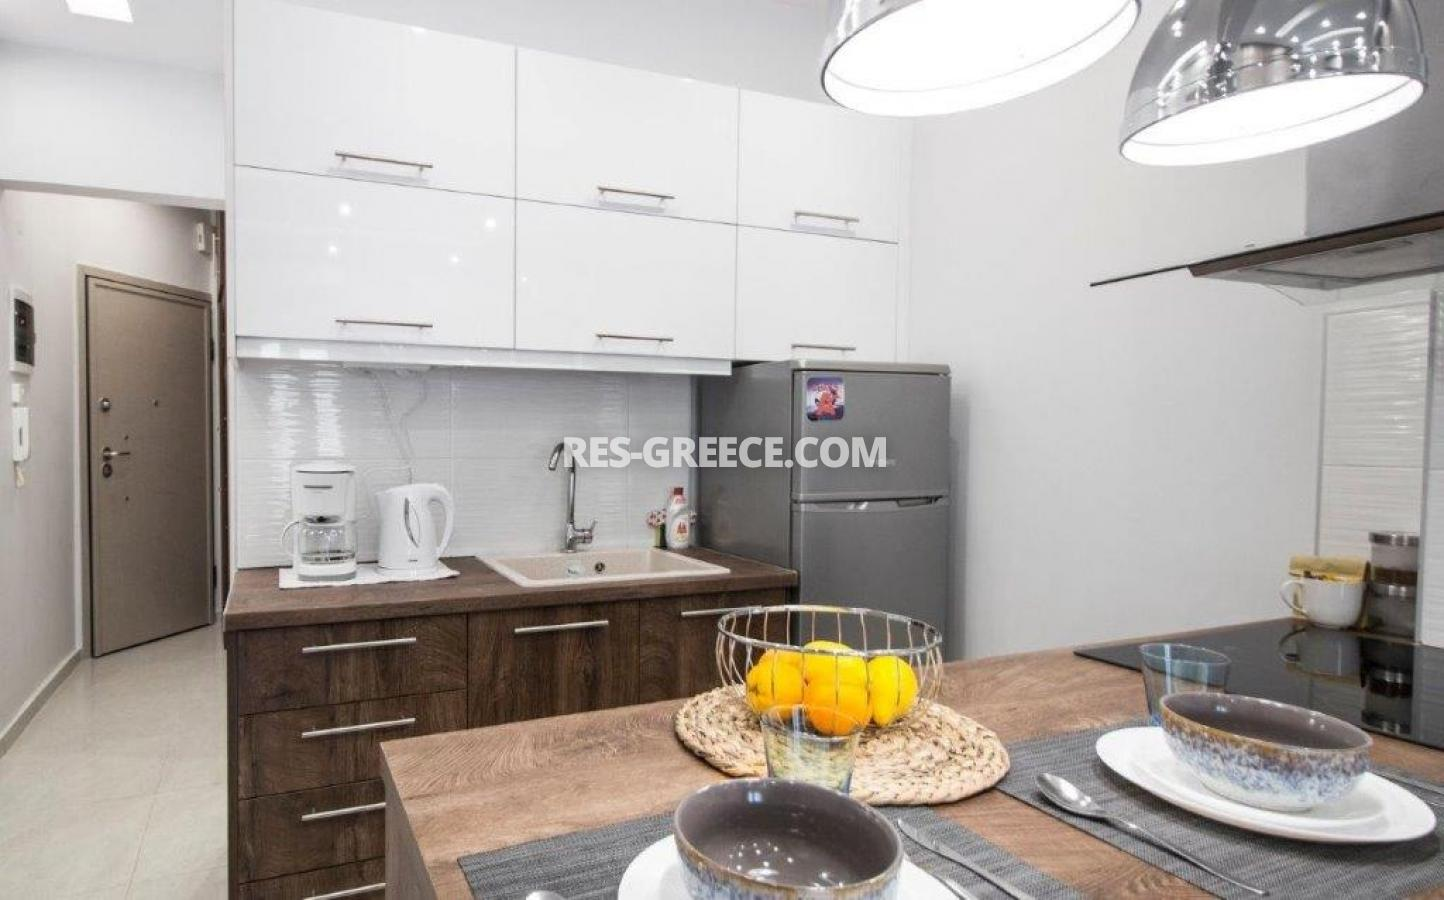 Germanou, Central Macedonia, Greece - apartments in Thessaloniki center for residence or long-term rent - Photo 10